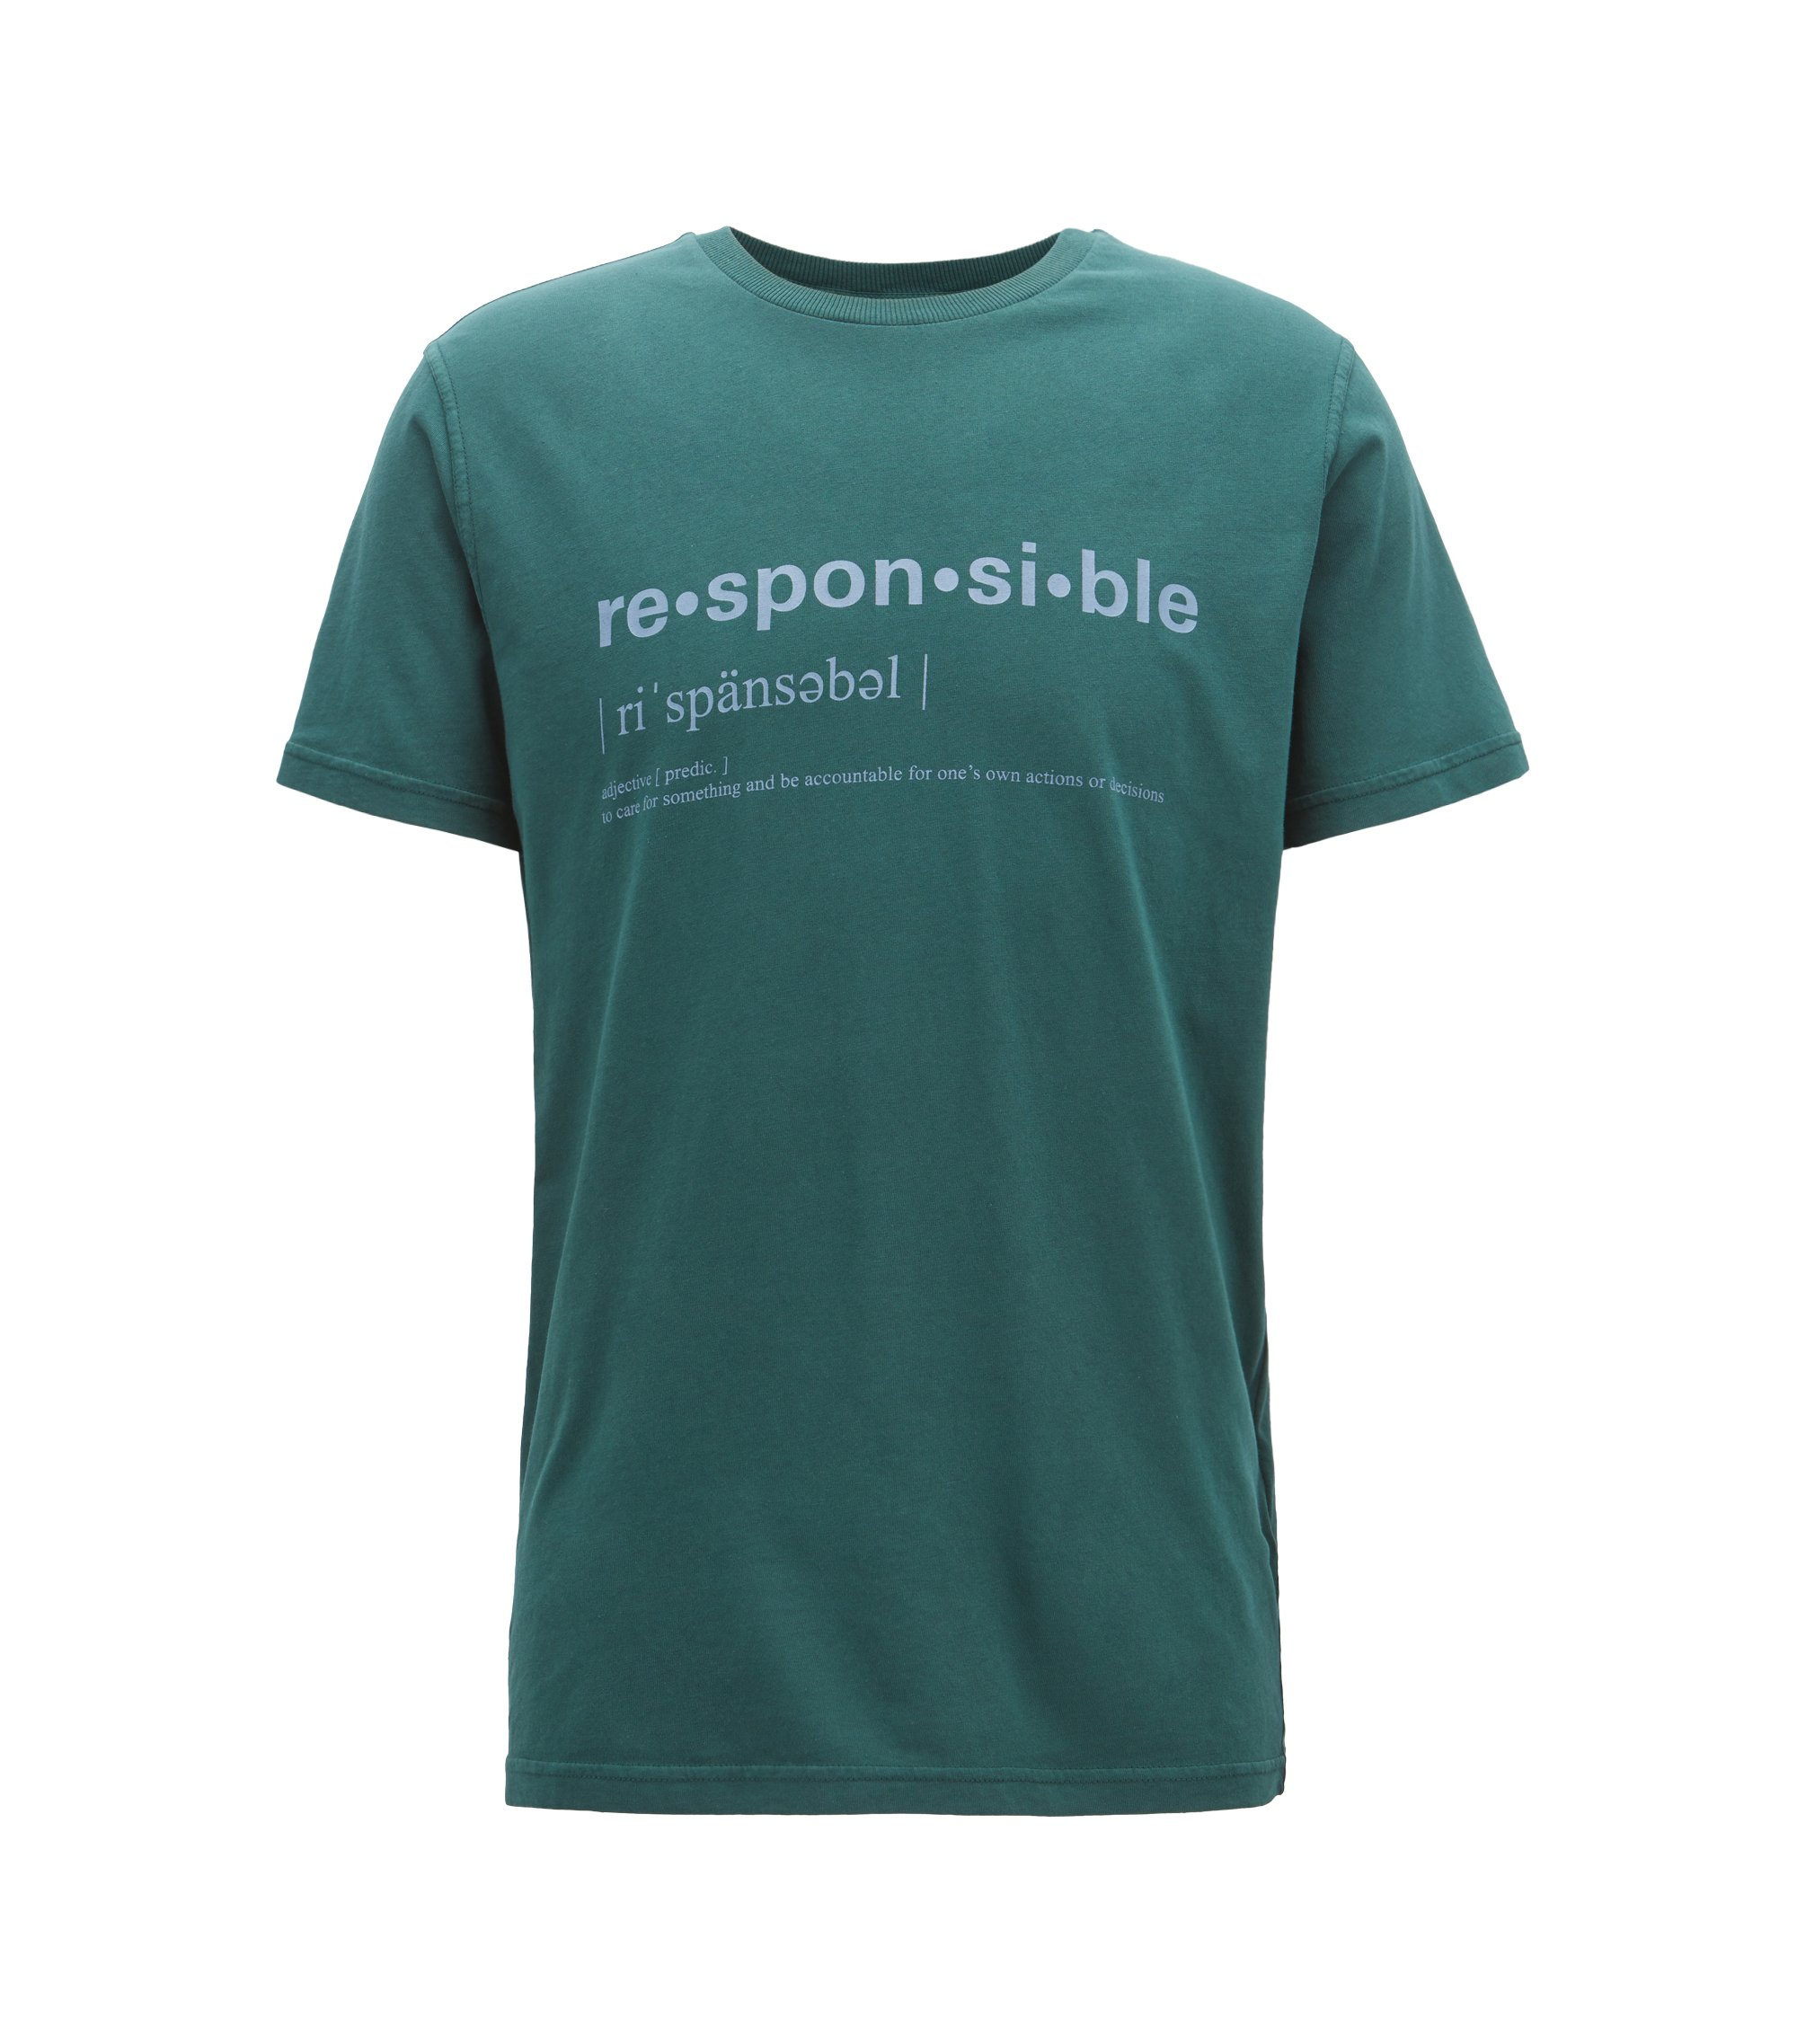 Relaxed-Fit T-Shirt aus recot²® Single Jersey mit Slogan, Dunkelgrün